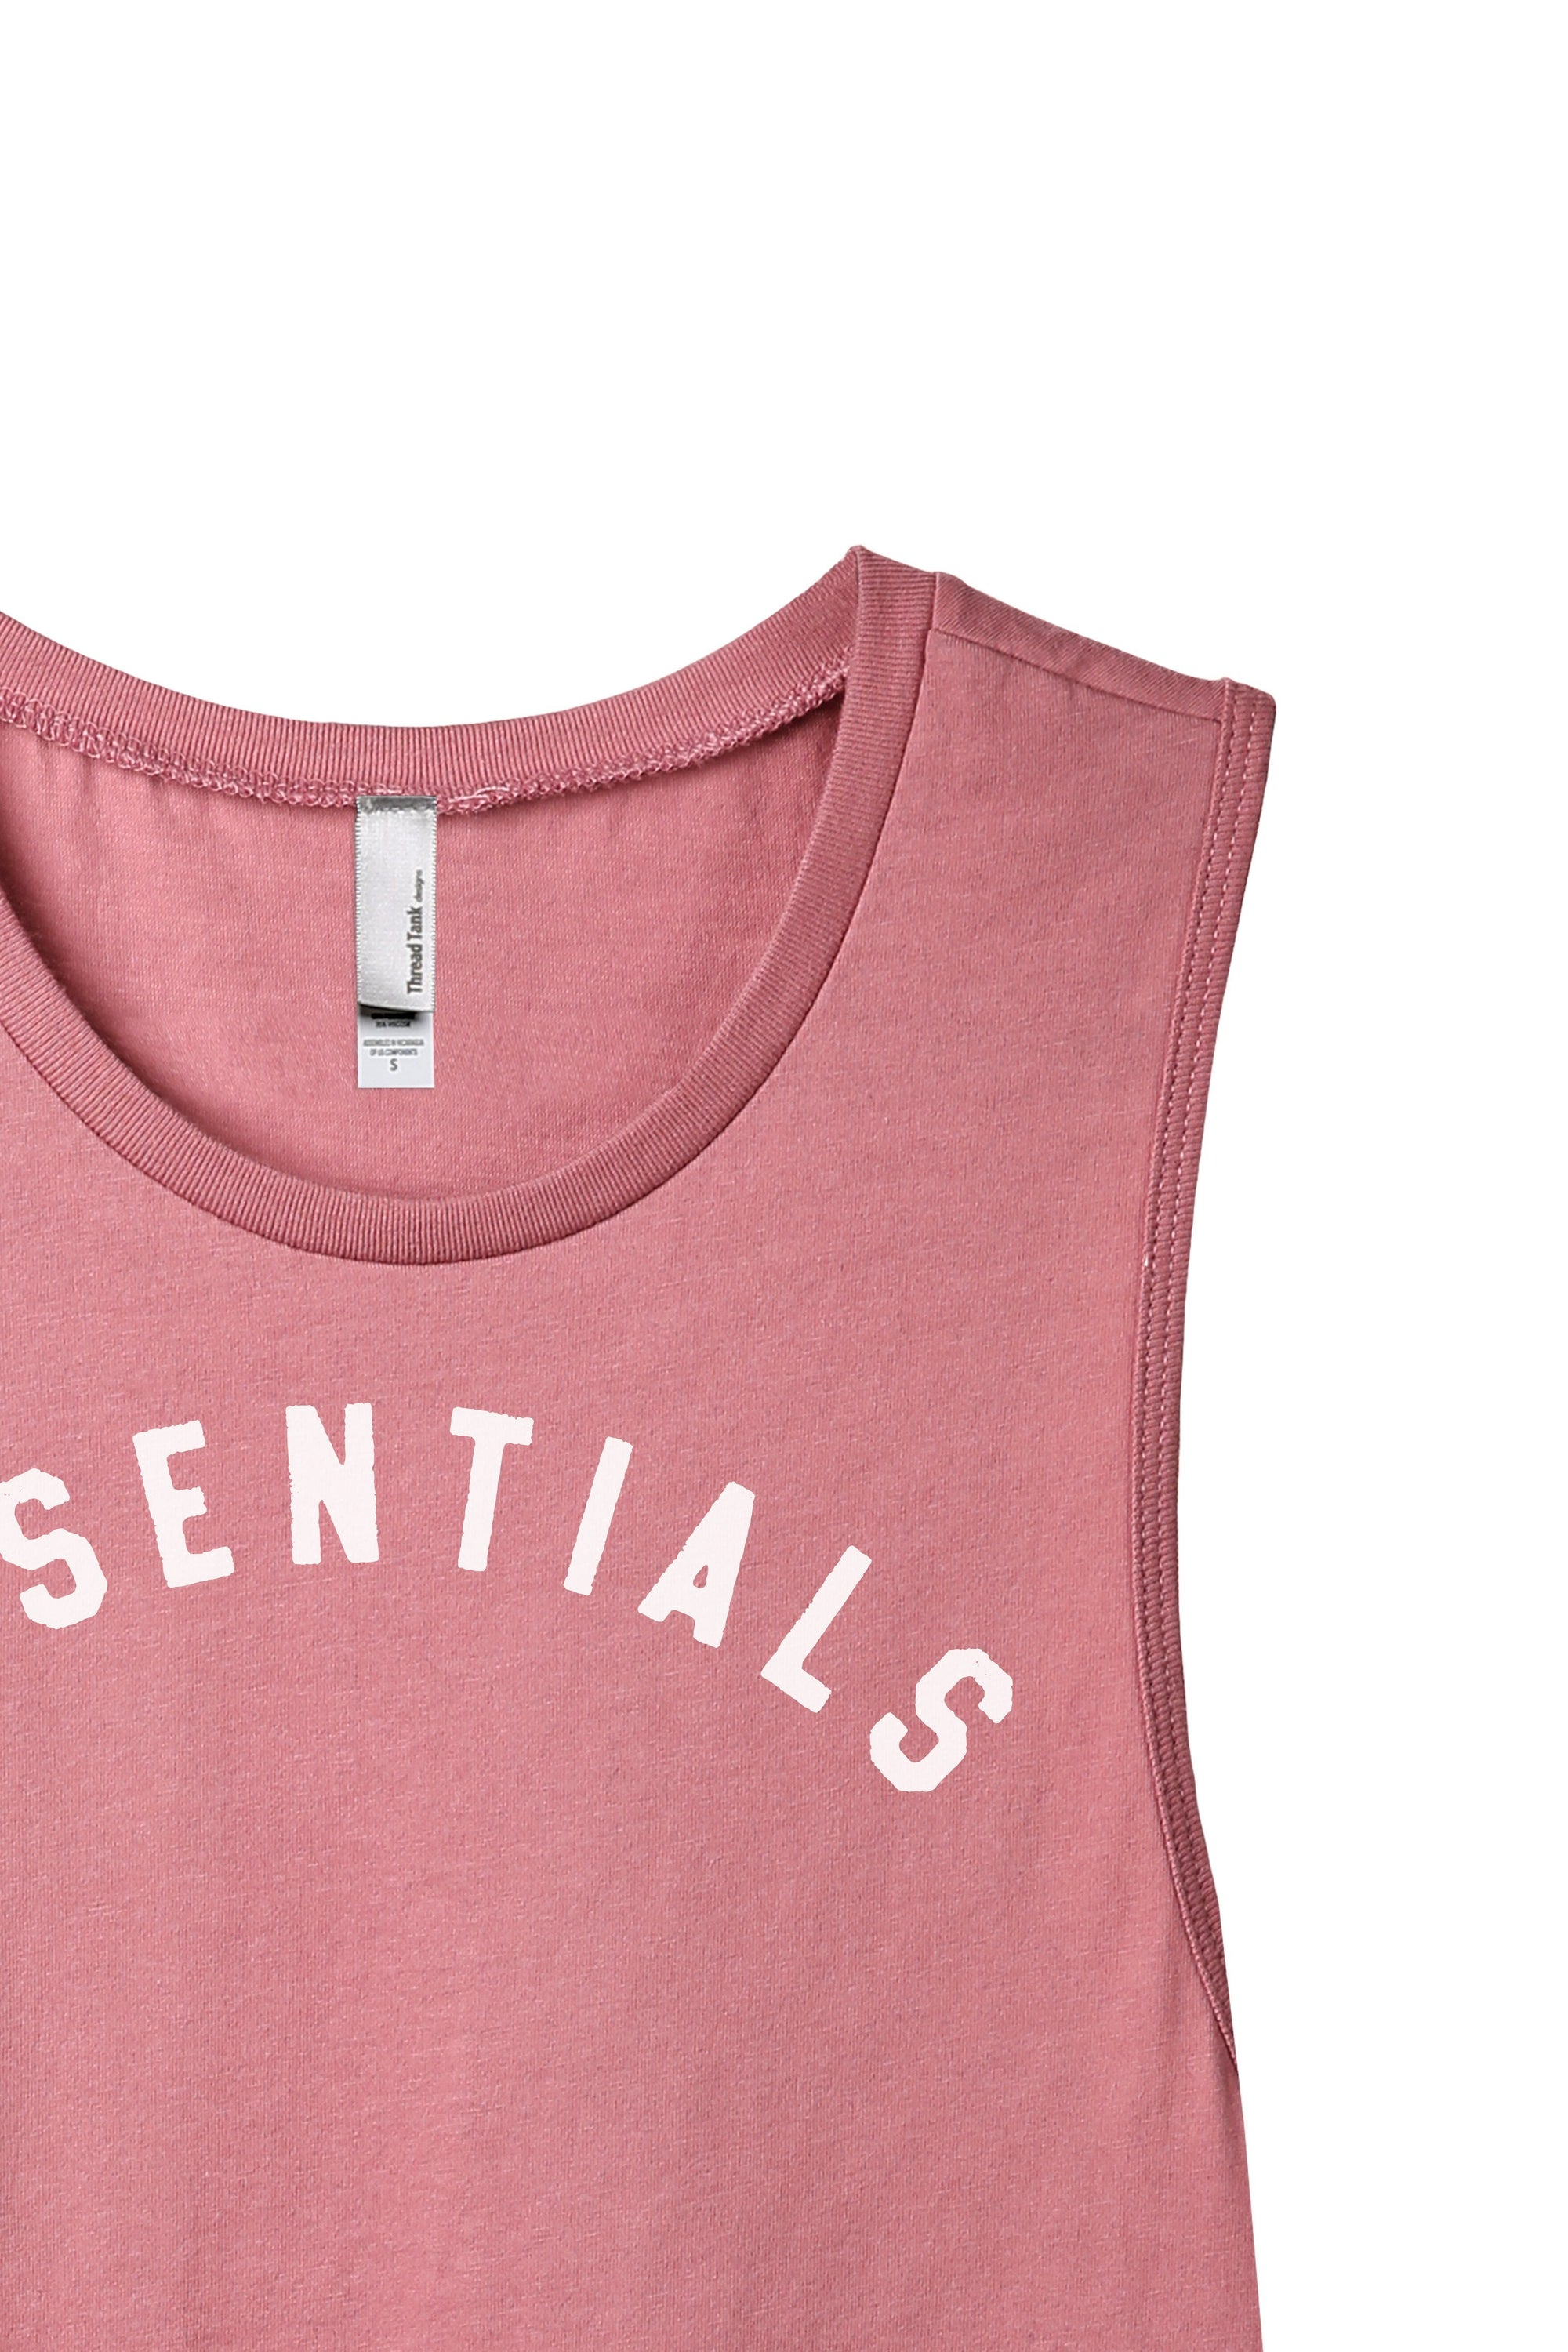 Essentials Women's Relaxed Muscle Tank Tee Rouge